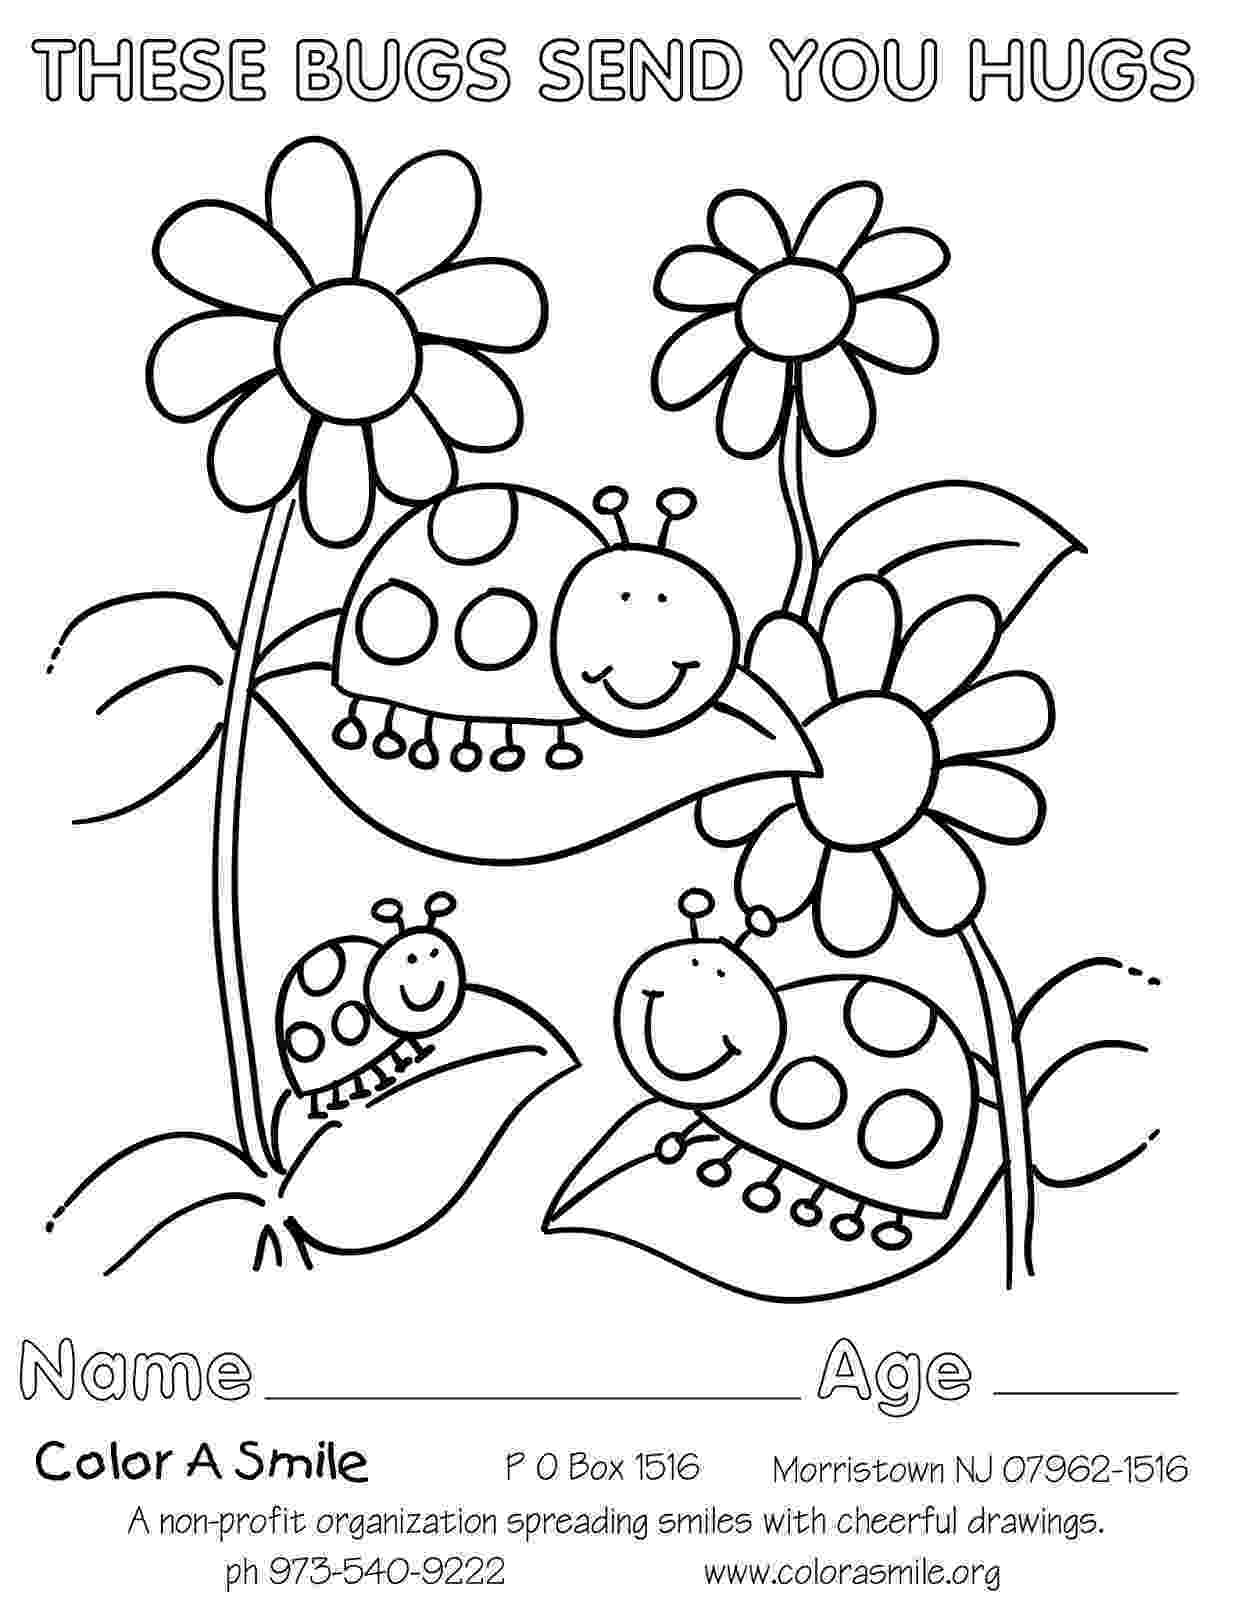 daisy girl scout coloring pages daisy girl scout coloring pages coloringpagesabccom pages coloring daisy scout girl